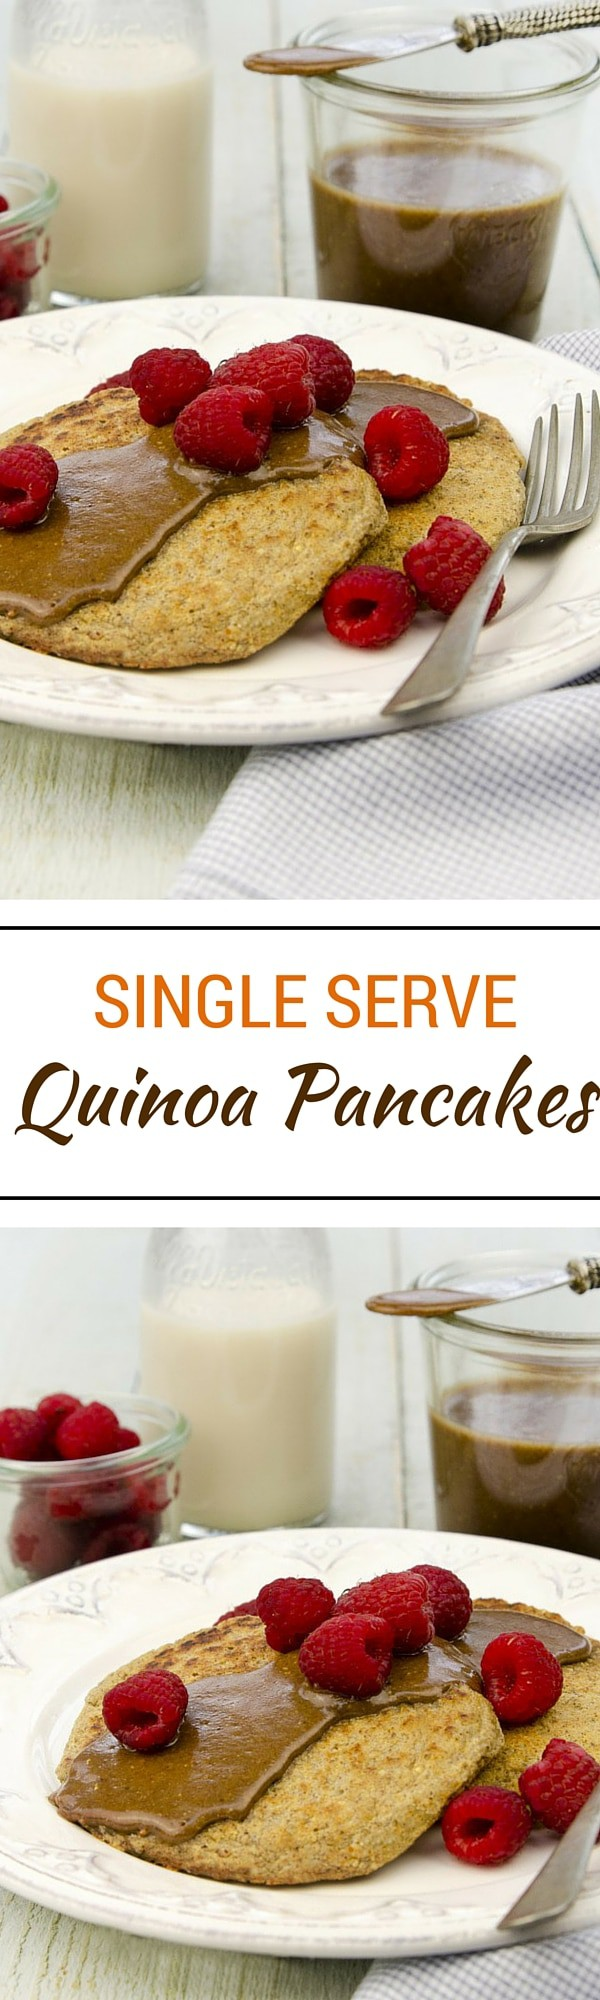 Single Serve Quinoa Pancakes - From Living Candida-Free by @rickiheller. Reprinted with permission from Da Capo Lifelong, © 2015. Photograph by Nicole Axworthy.